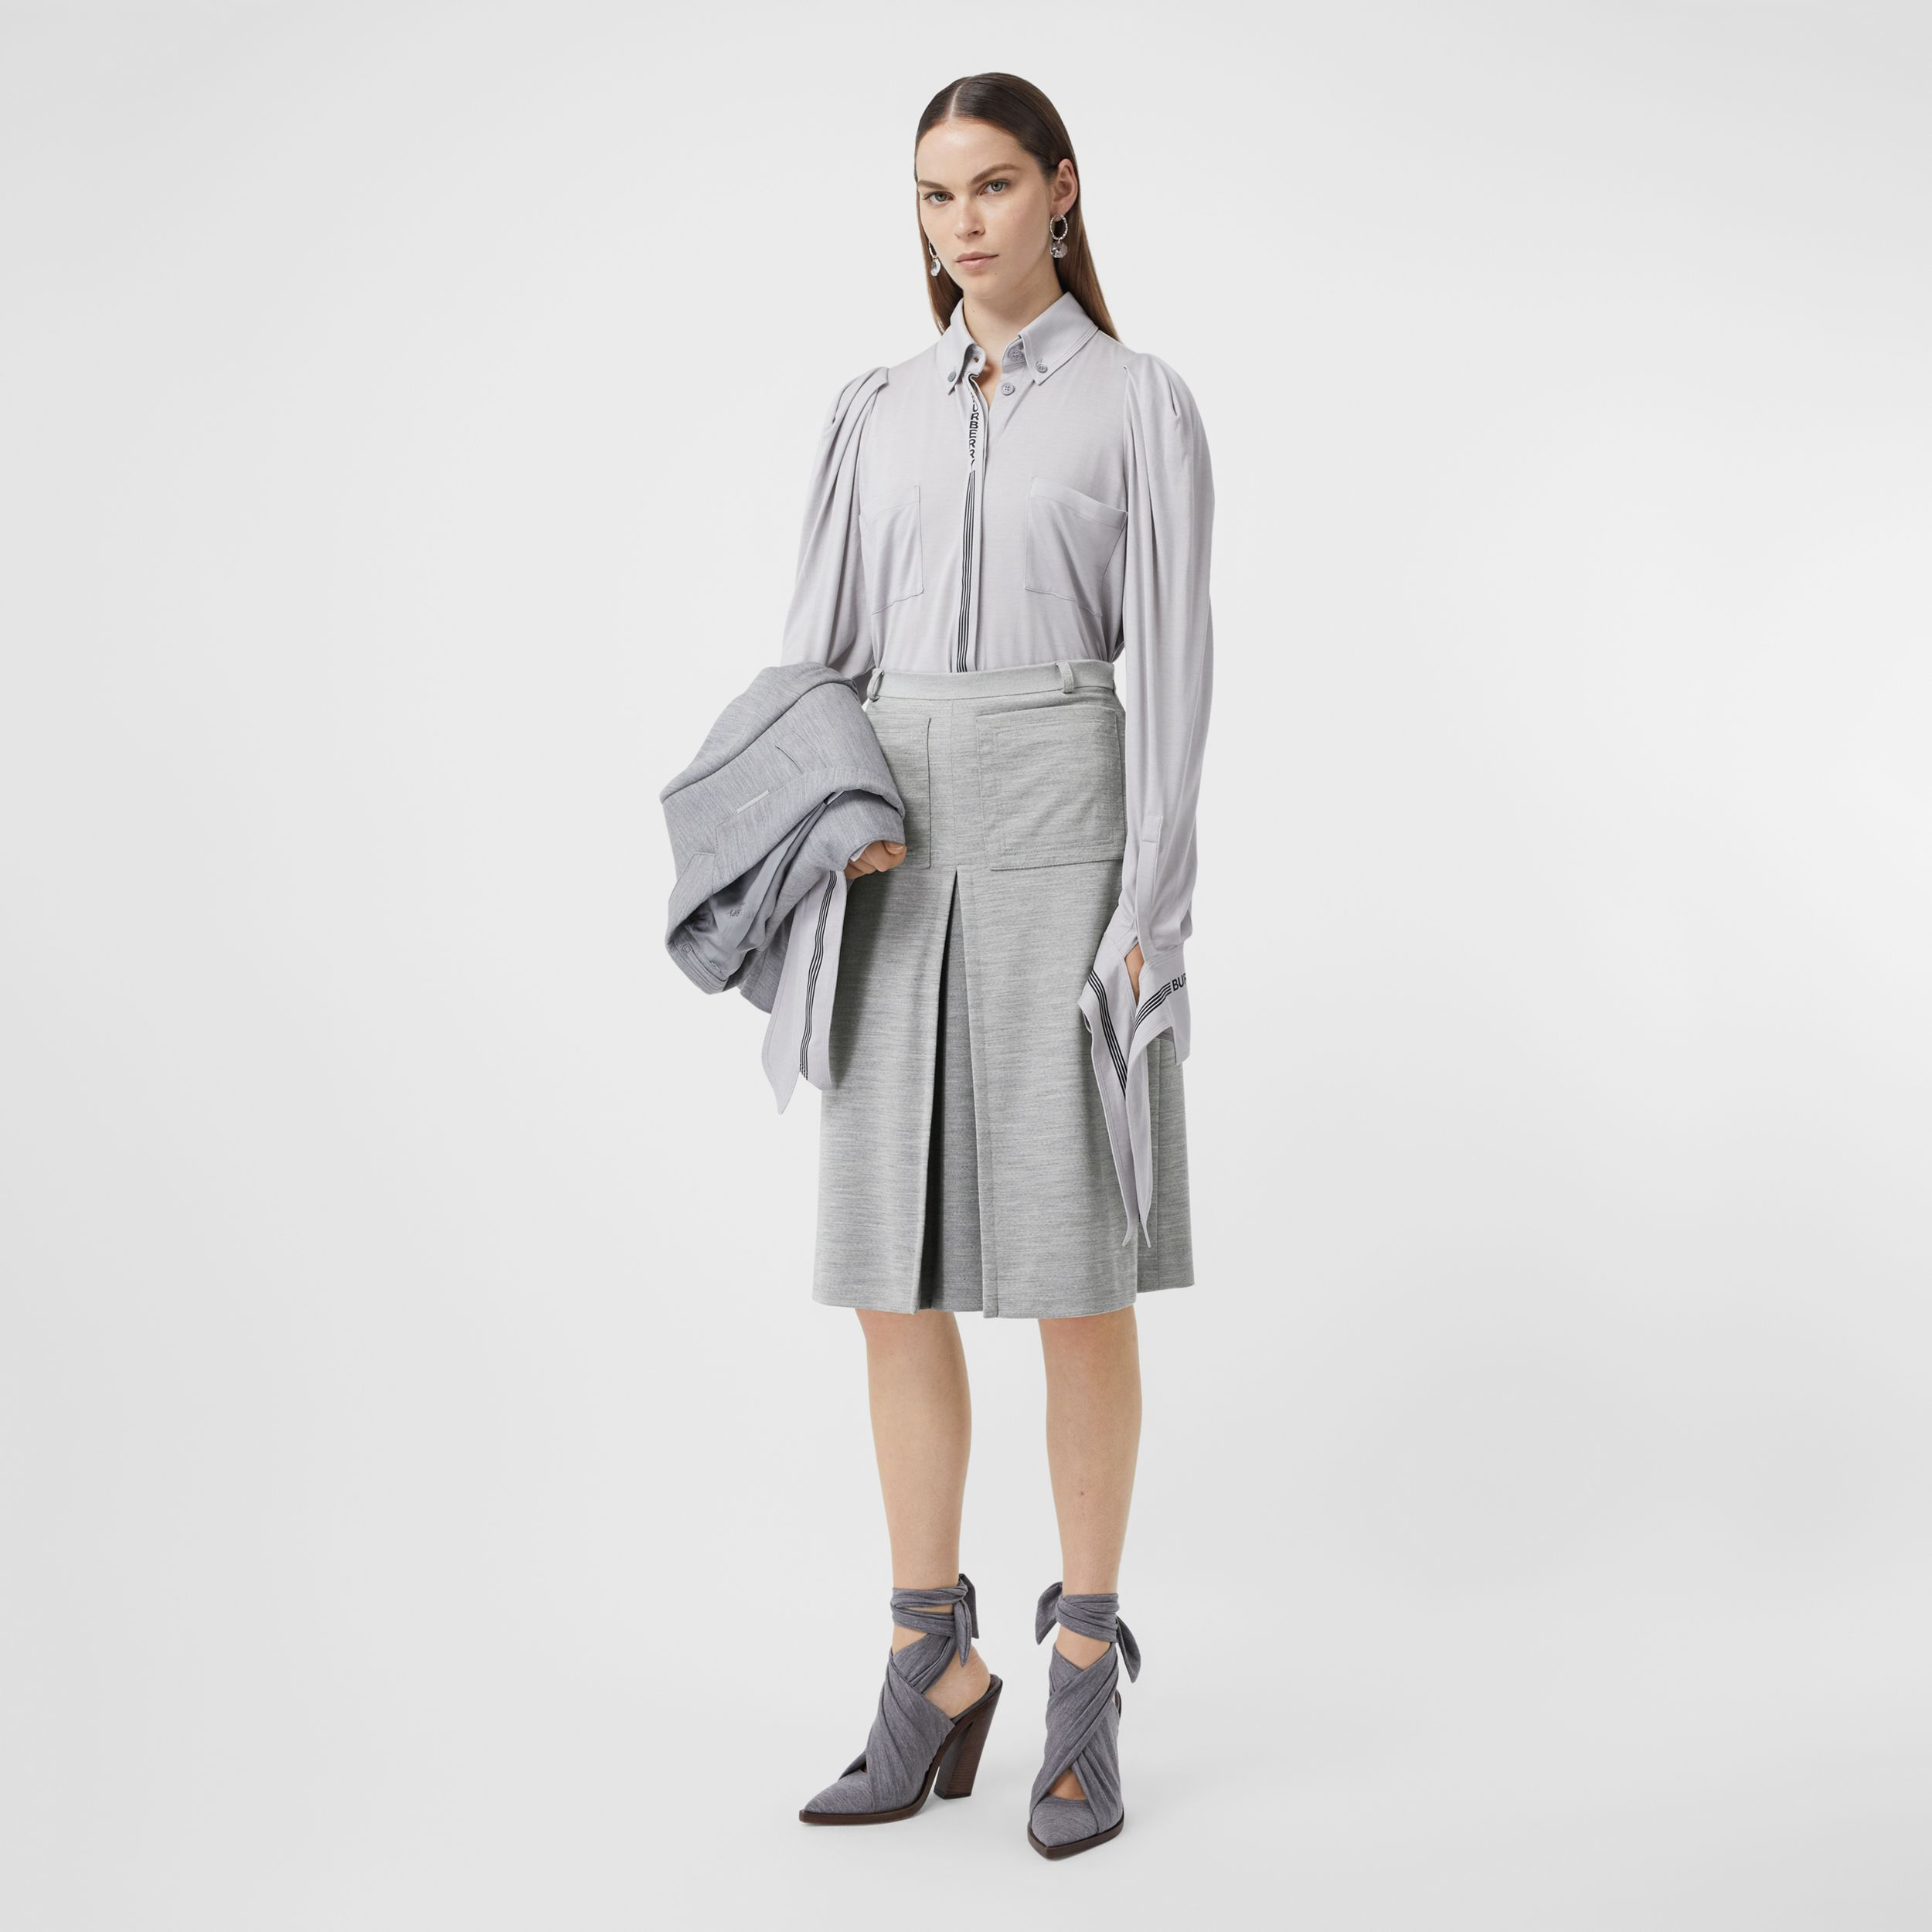 Box-pleat Detail Technical Wool Jersey A-line Skirt in Cloud Grey - Women | Burberry - 1